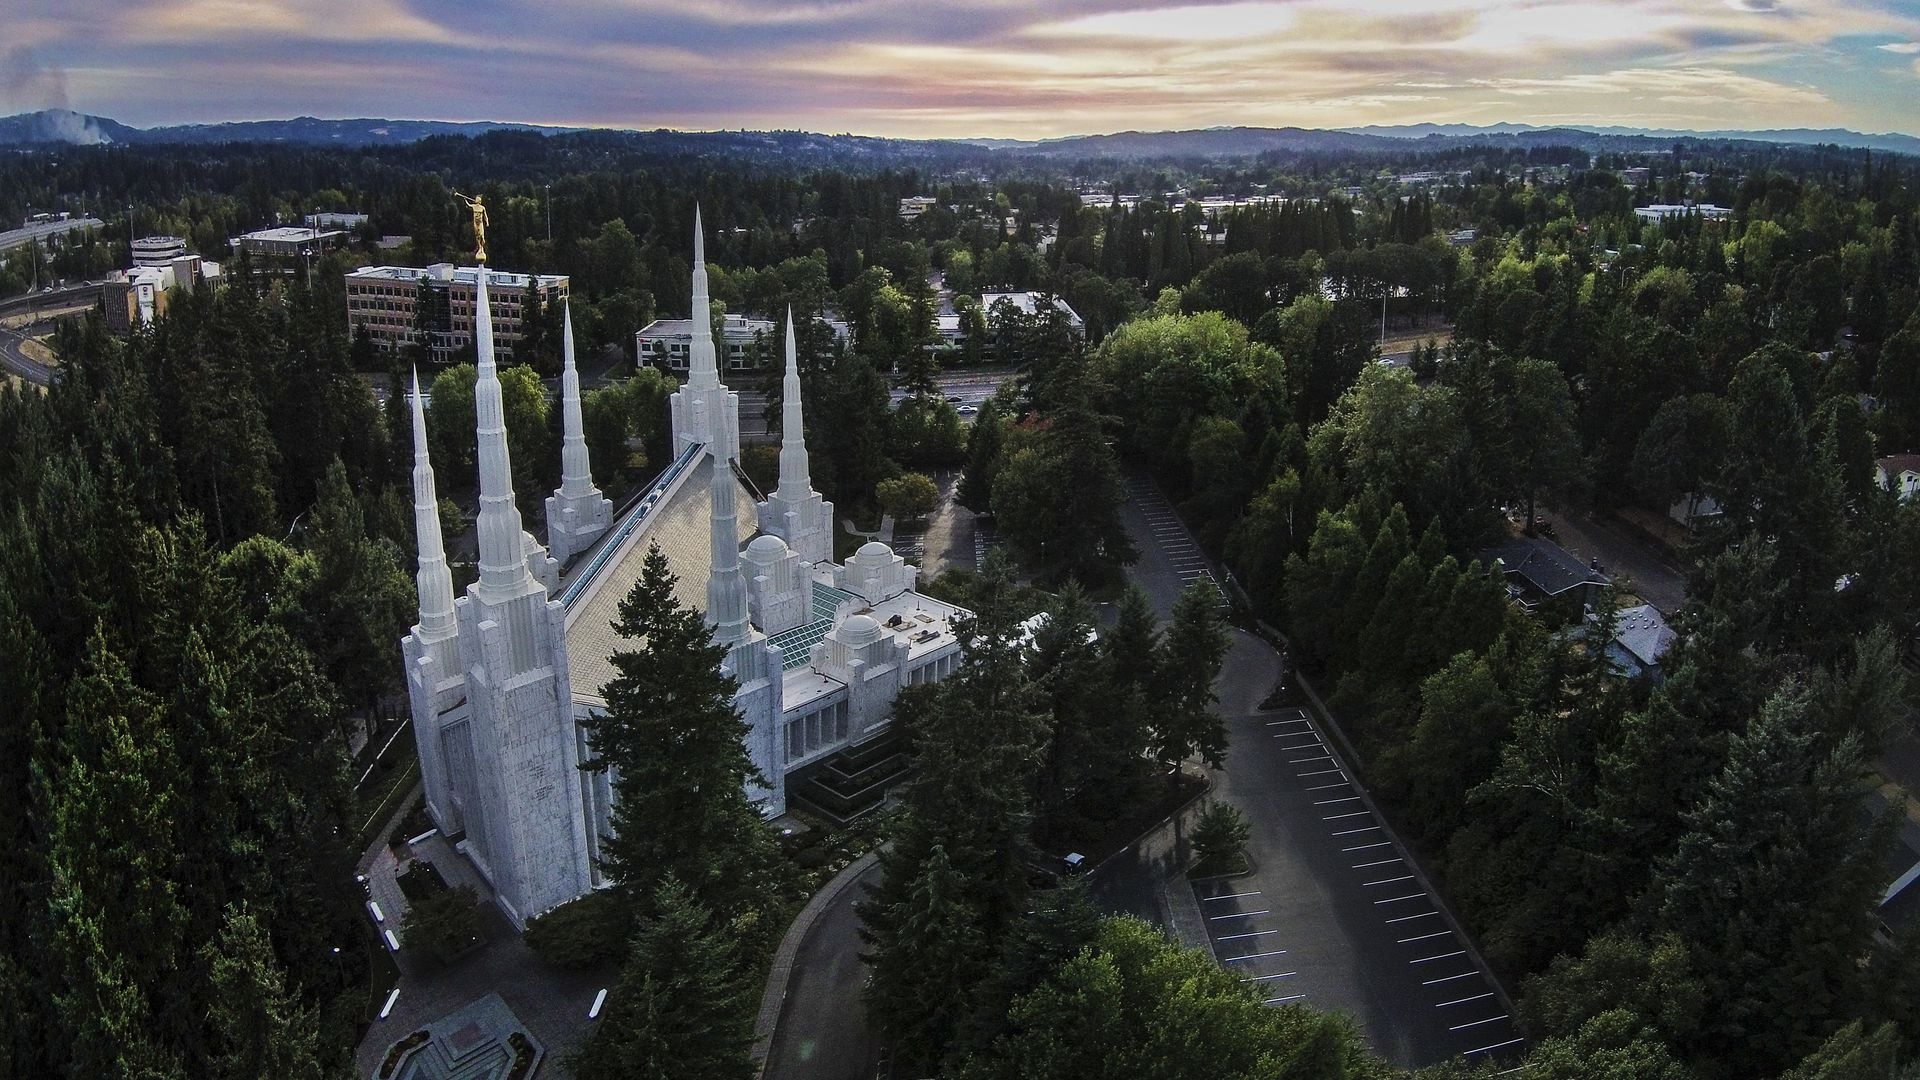 A mormon church in Oregon